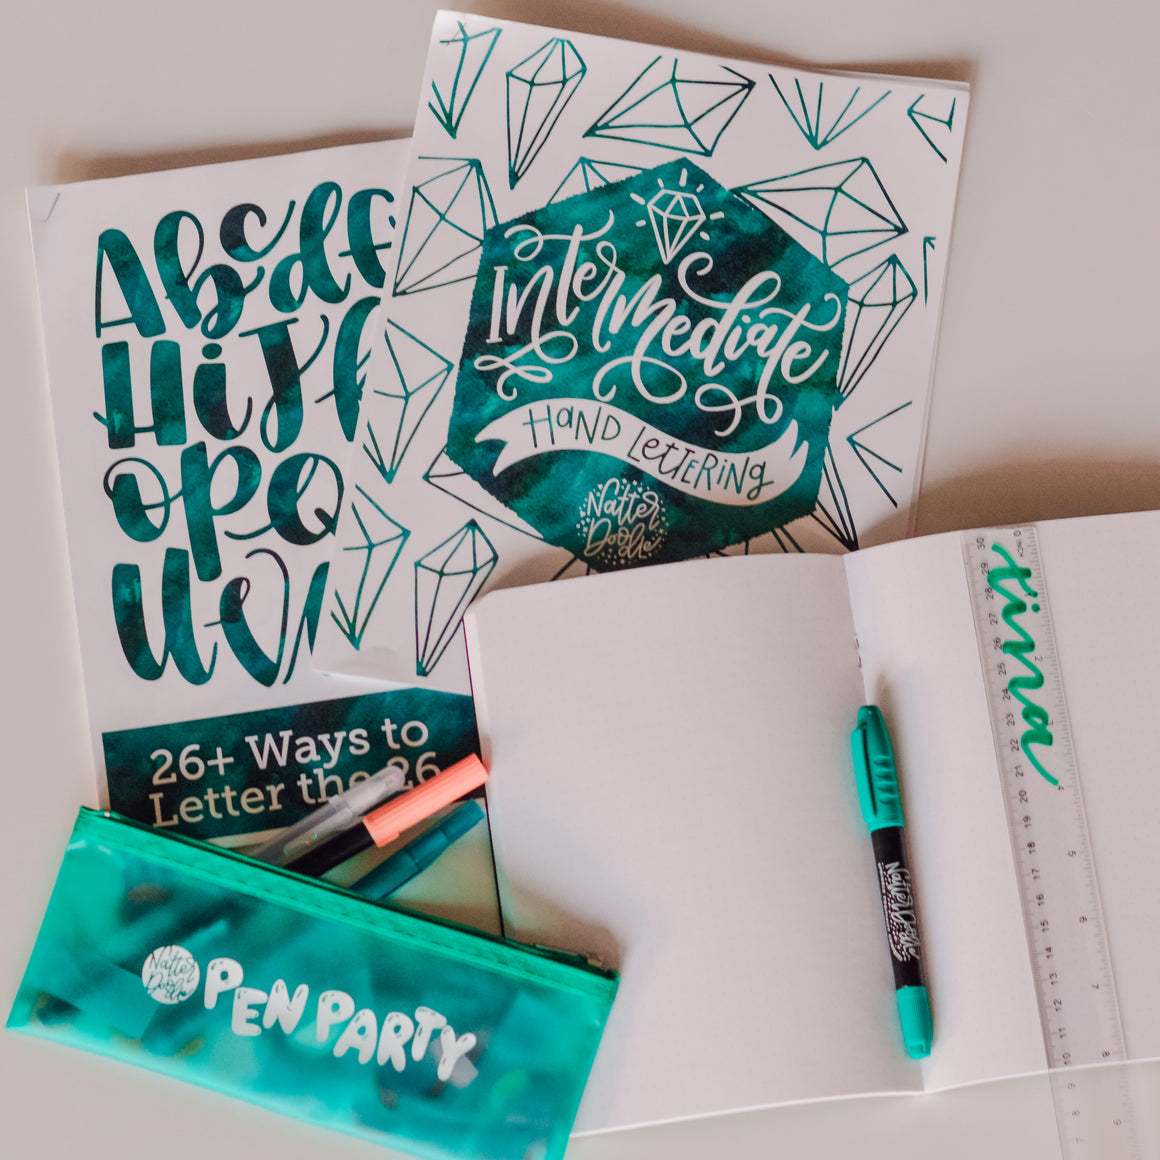 Virtual Intermediate Hand Lettering Workshop - July 20